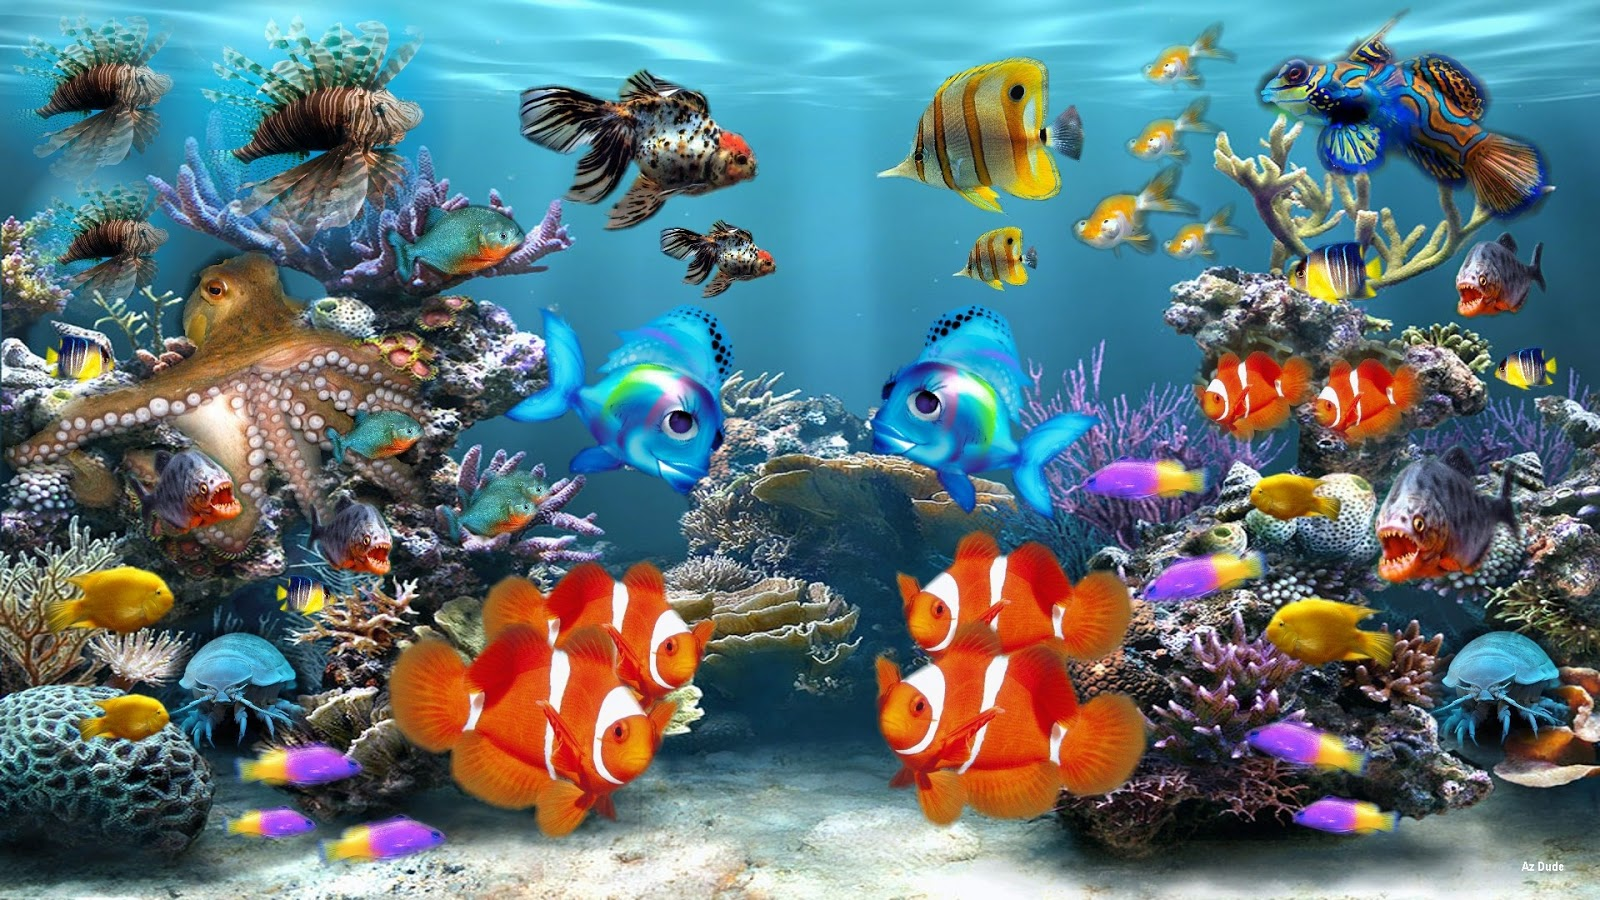 Aquarium hd wallpaper aquarium wallpaper best 2 travel for Aquarium fish online